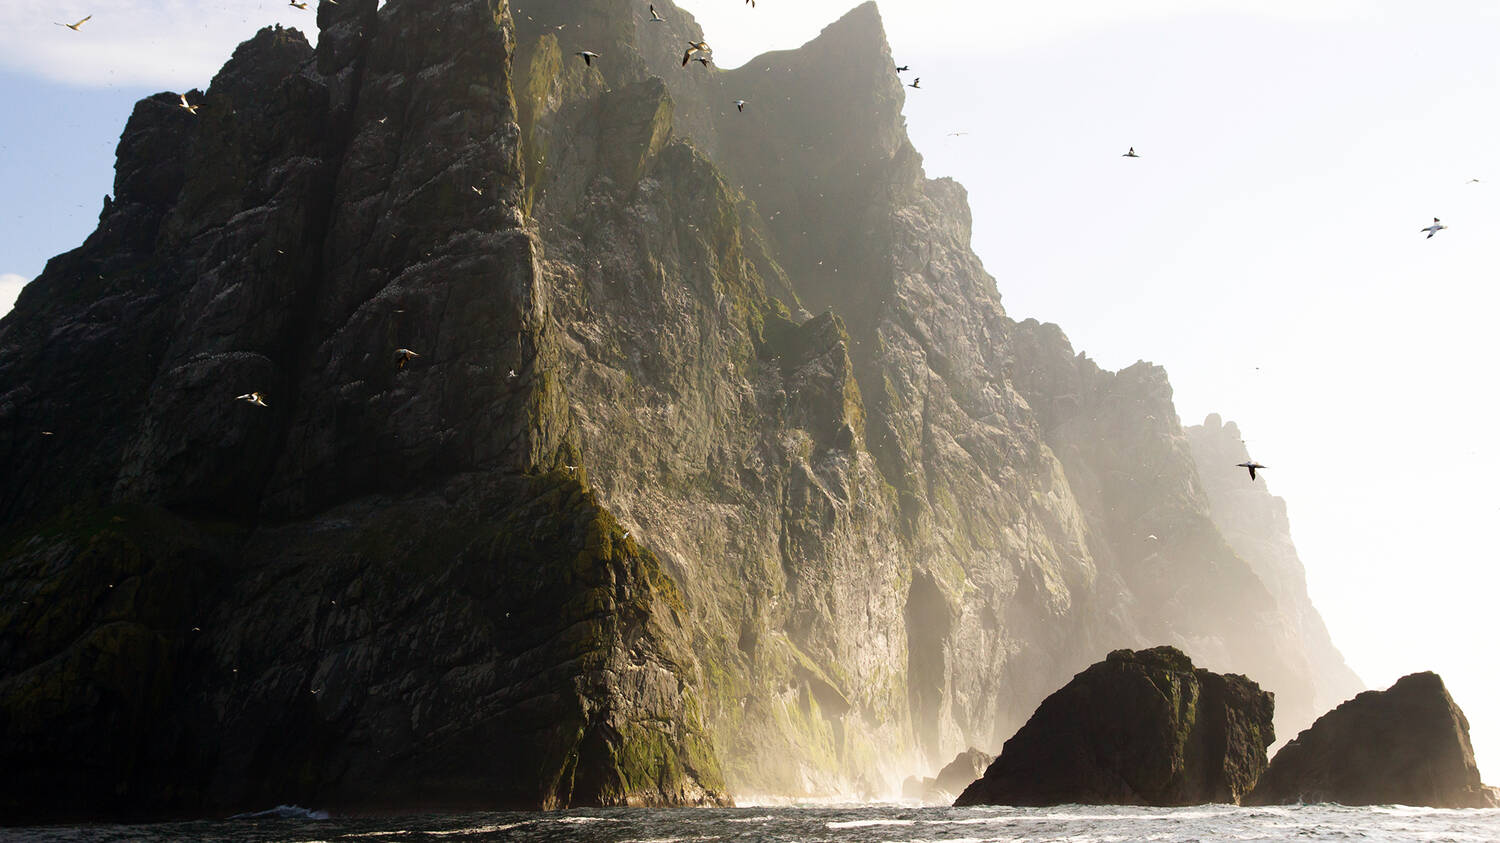 A photograph of Boreray, St Kilda showing sheer, steep rock faces rising dramatically out of the sea.